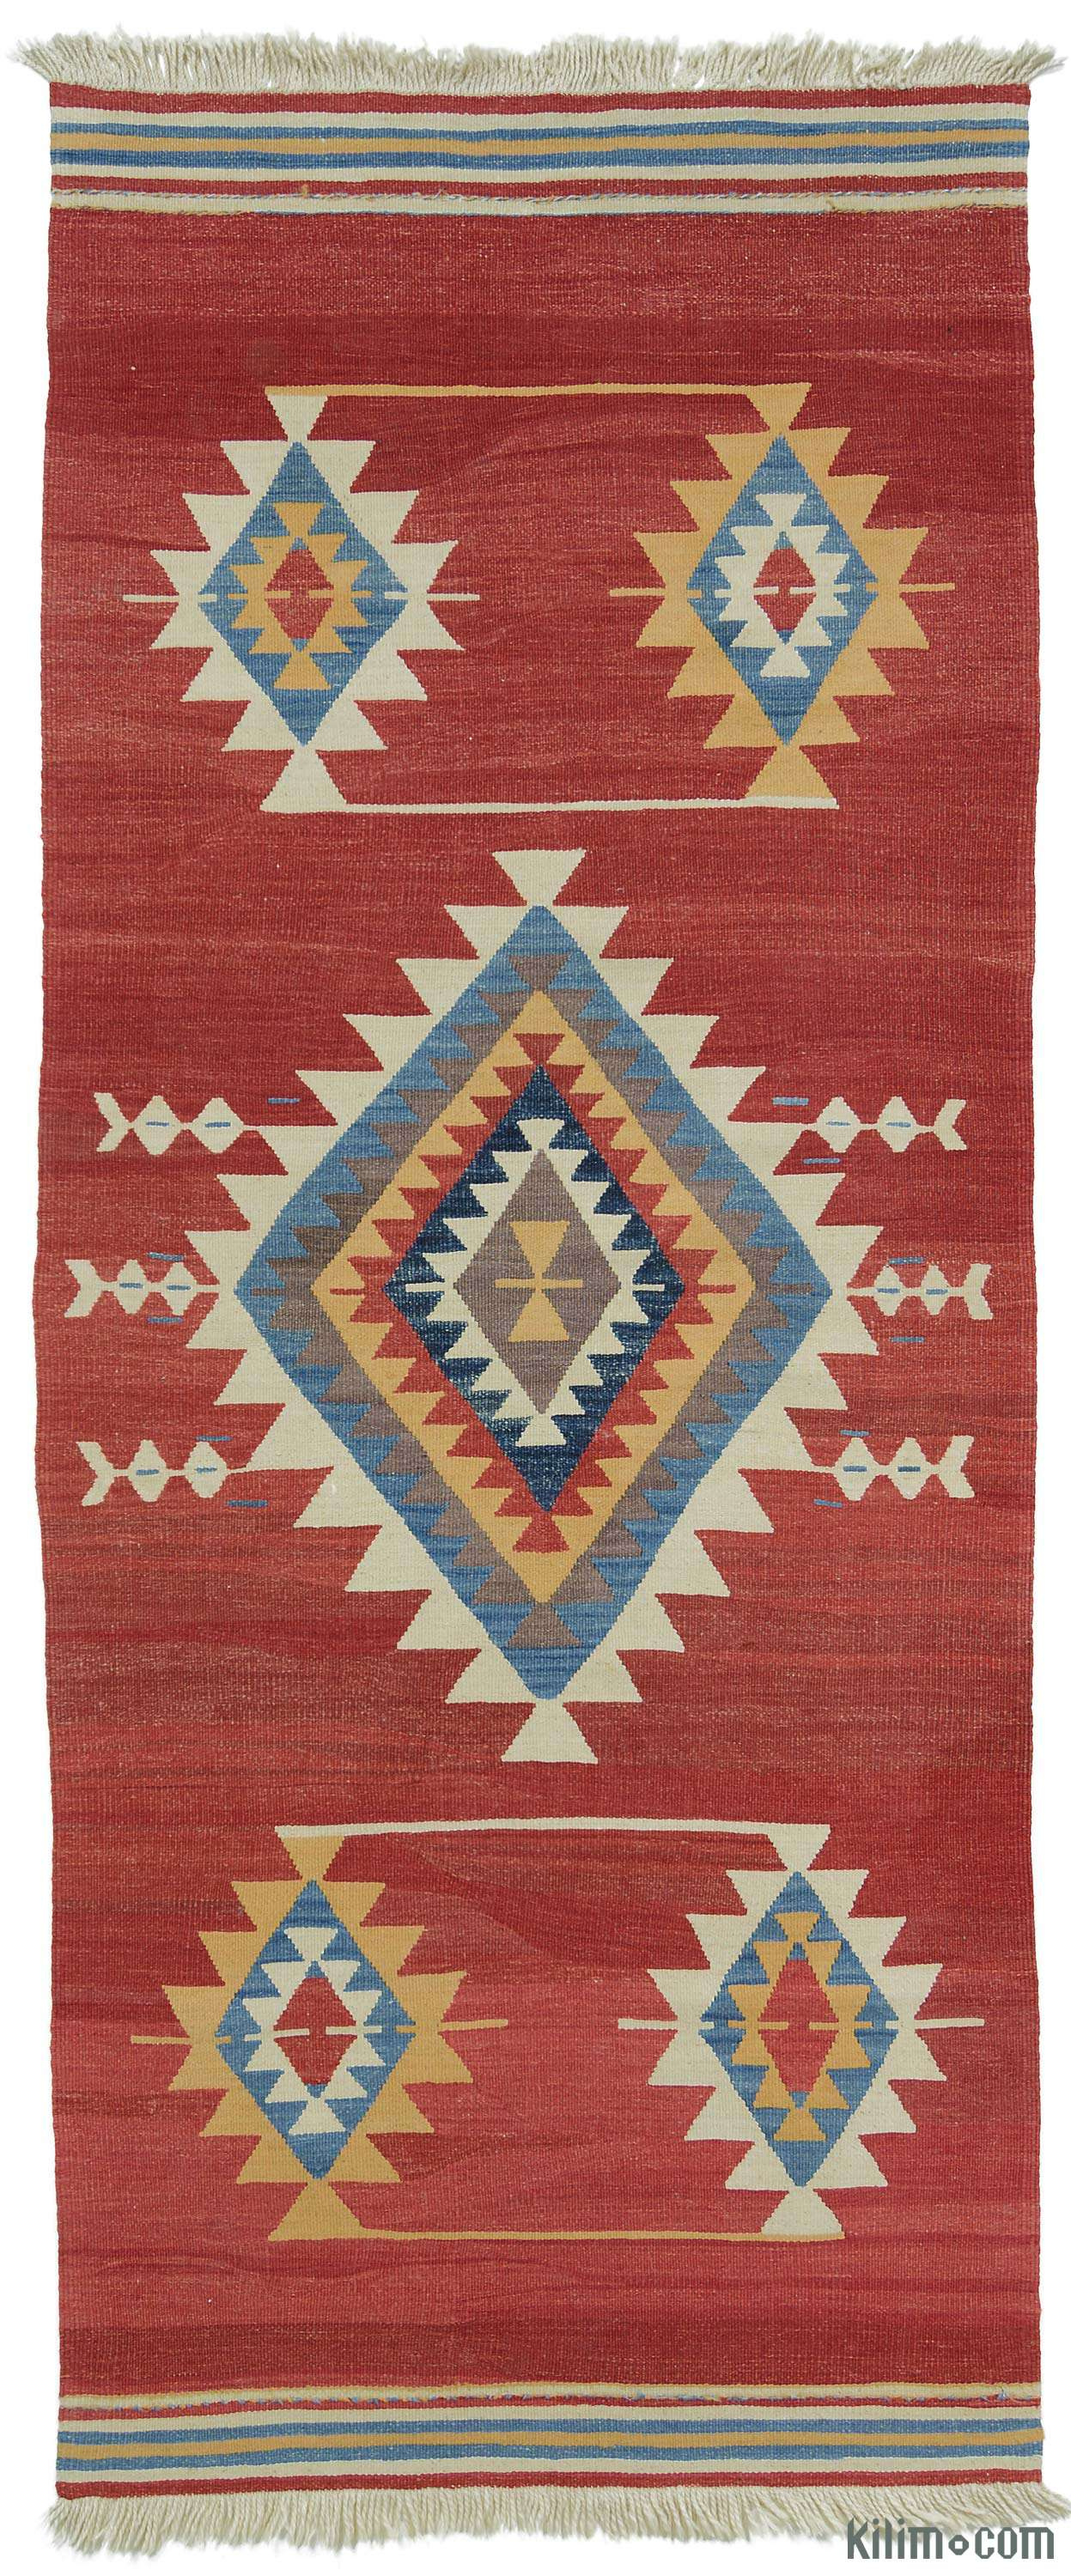 New Turkish Kilim Runner K0004367 Finest Kilims And